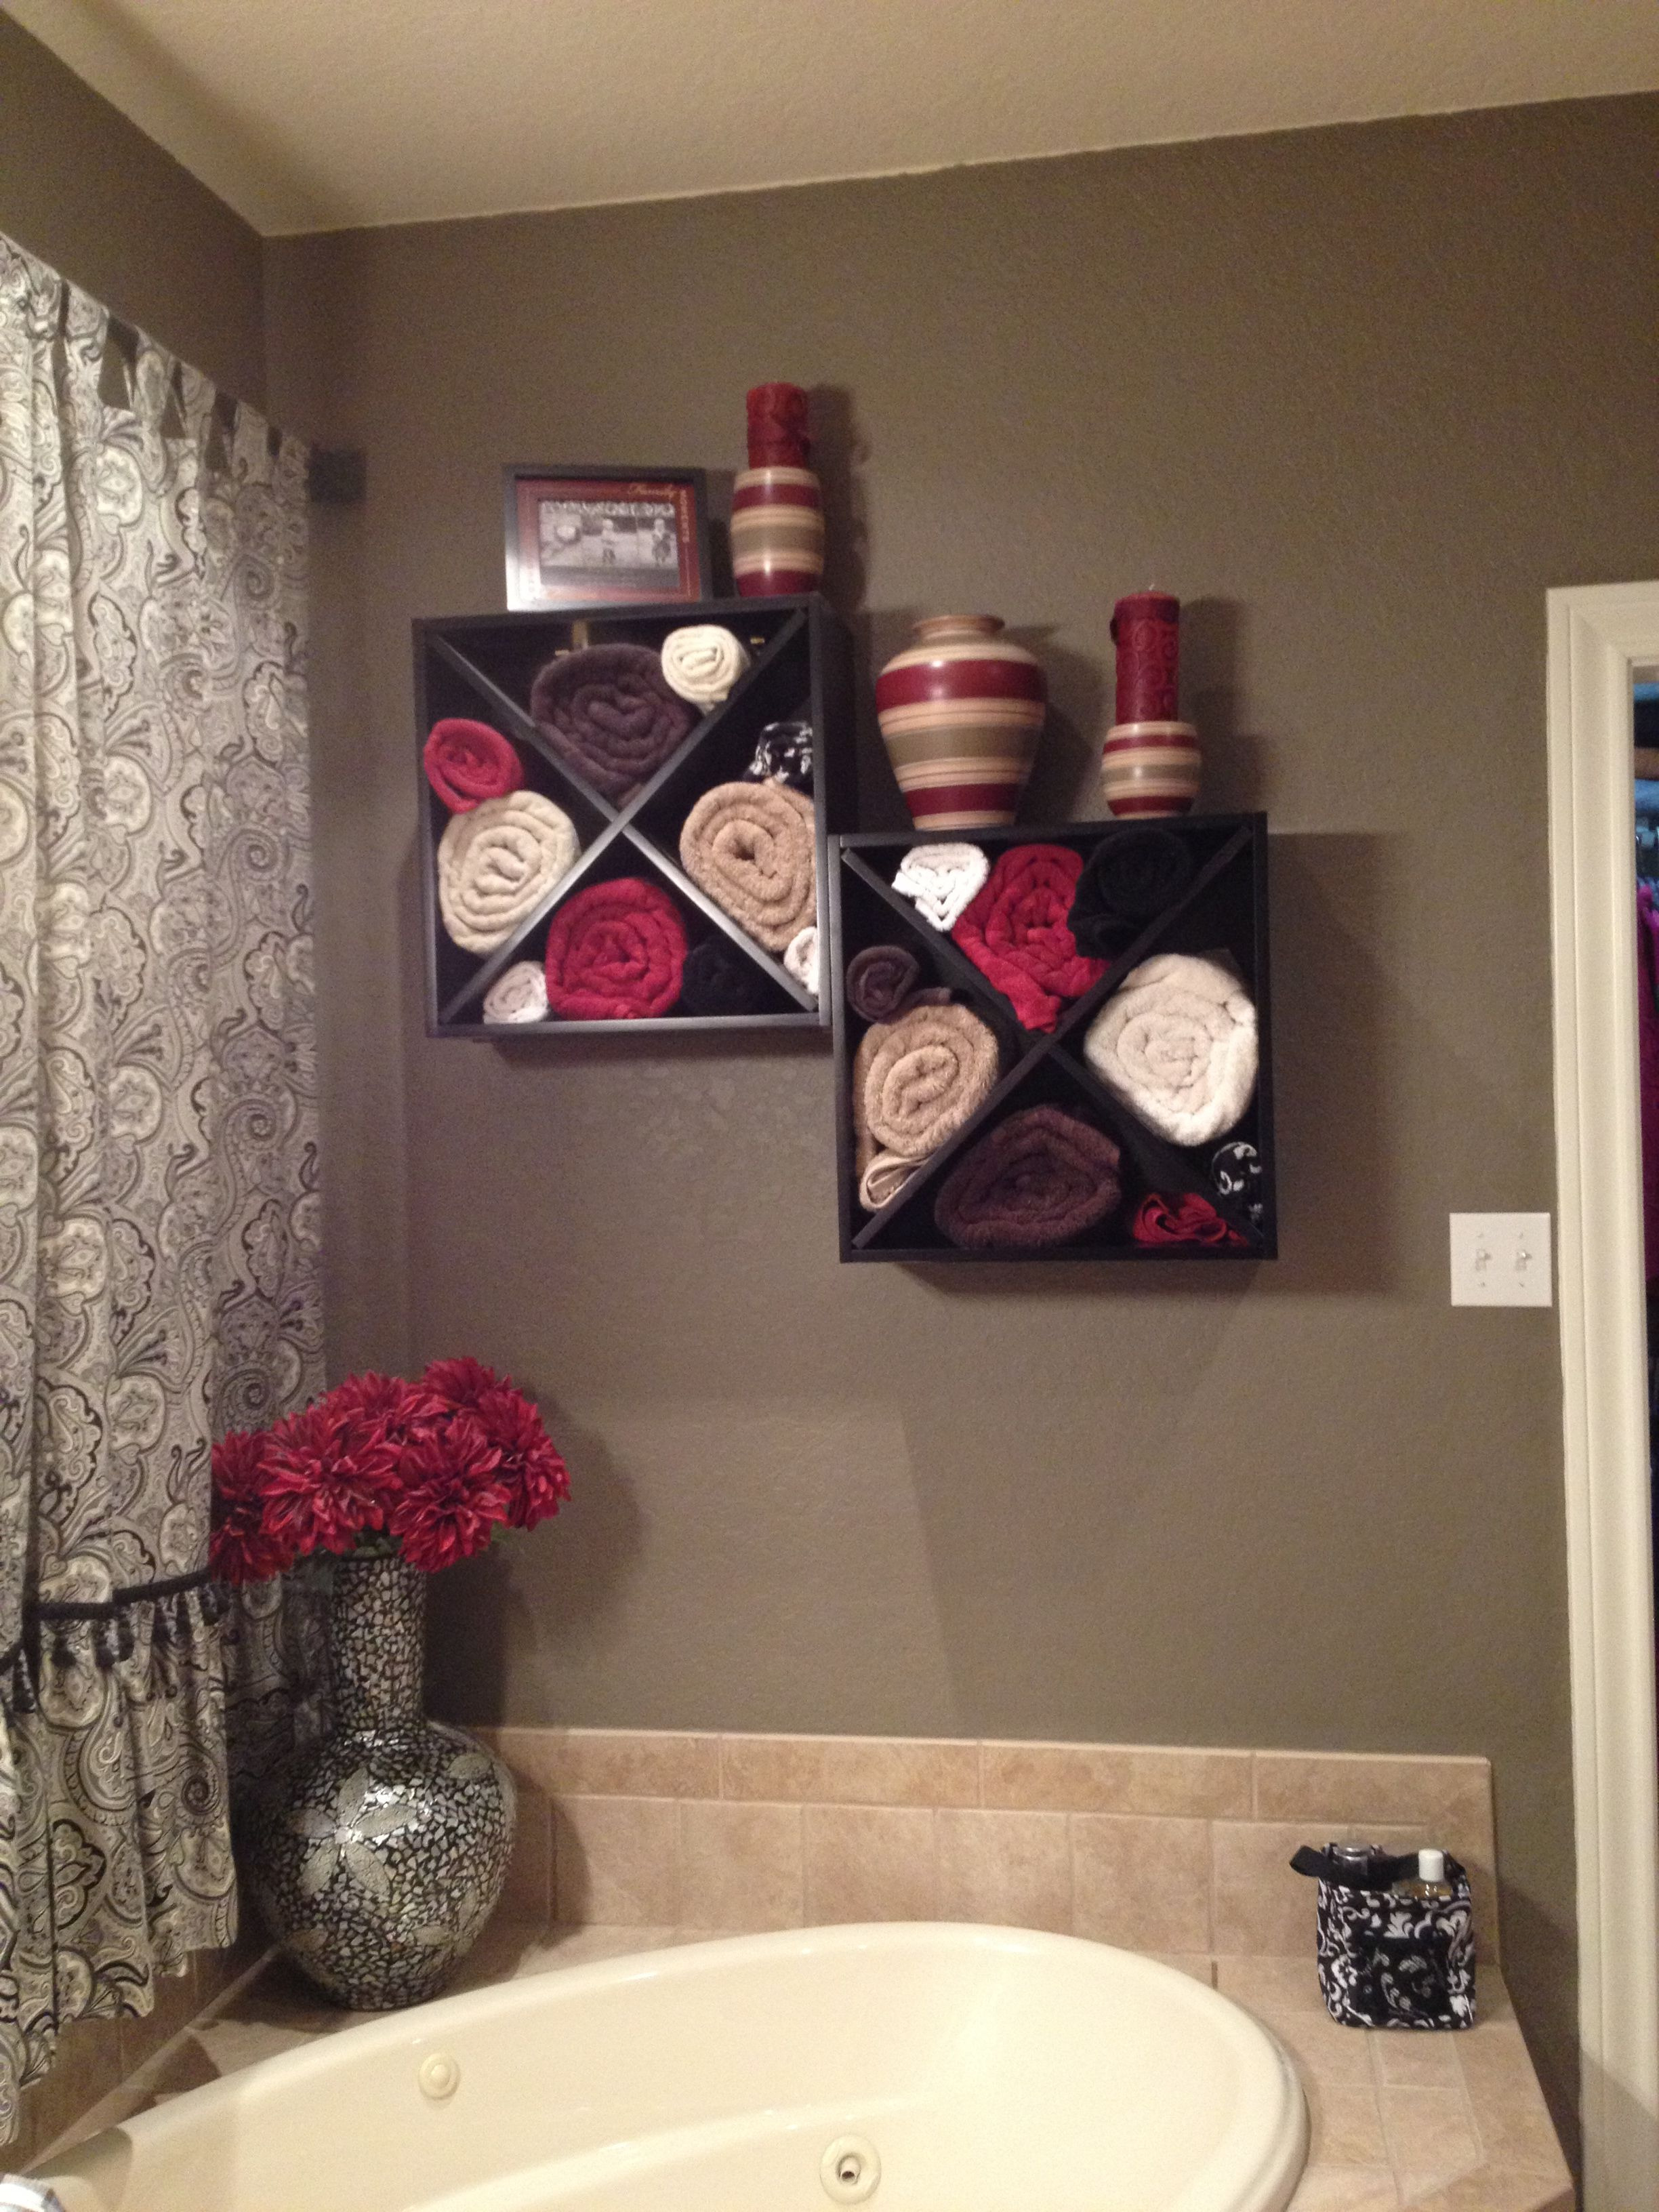 Bathroom towel Rack Decorating Ideas Unique Wine Rack Mounted to the Wall Over A Large Garden Tub Great